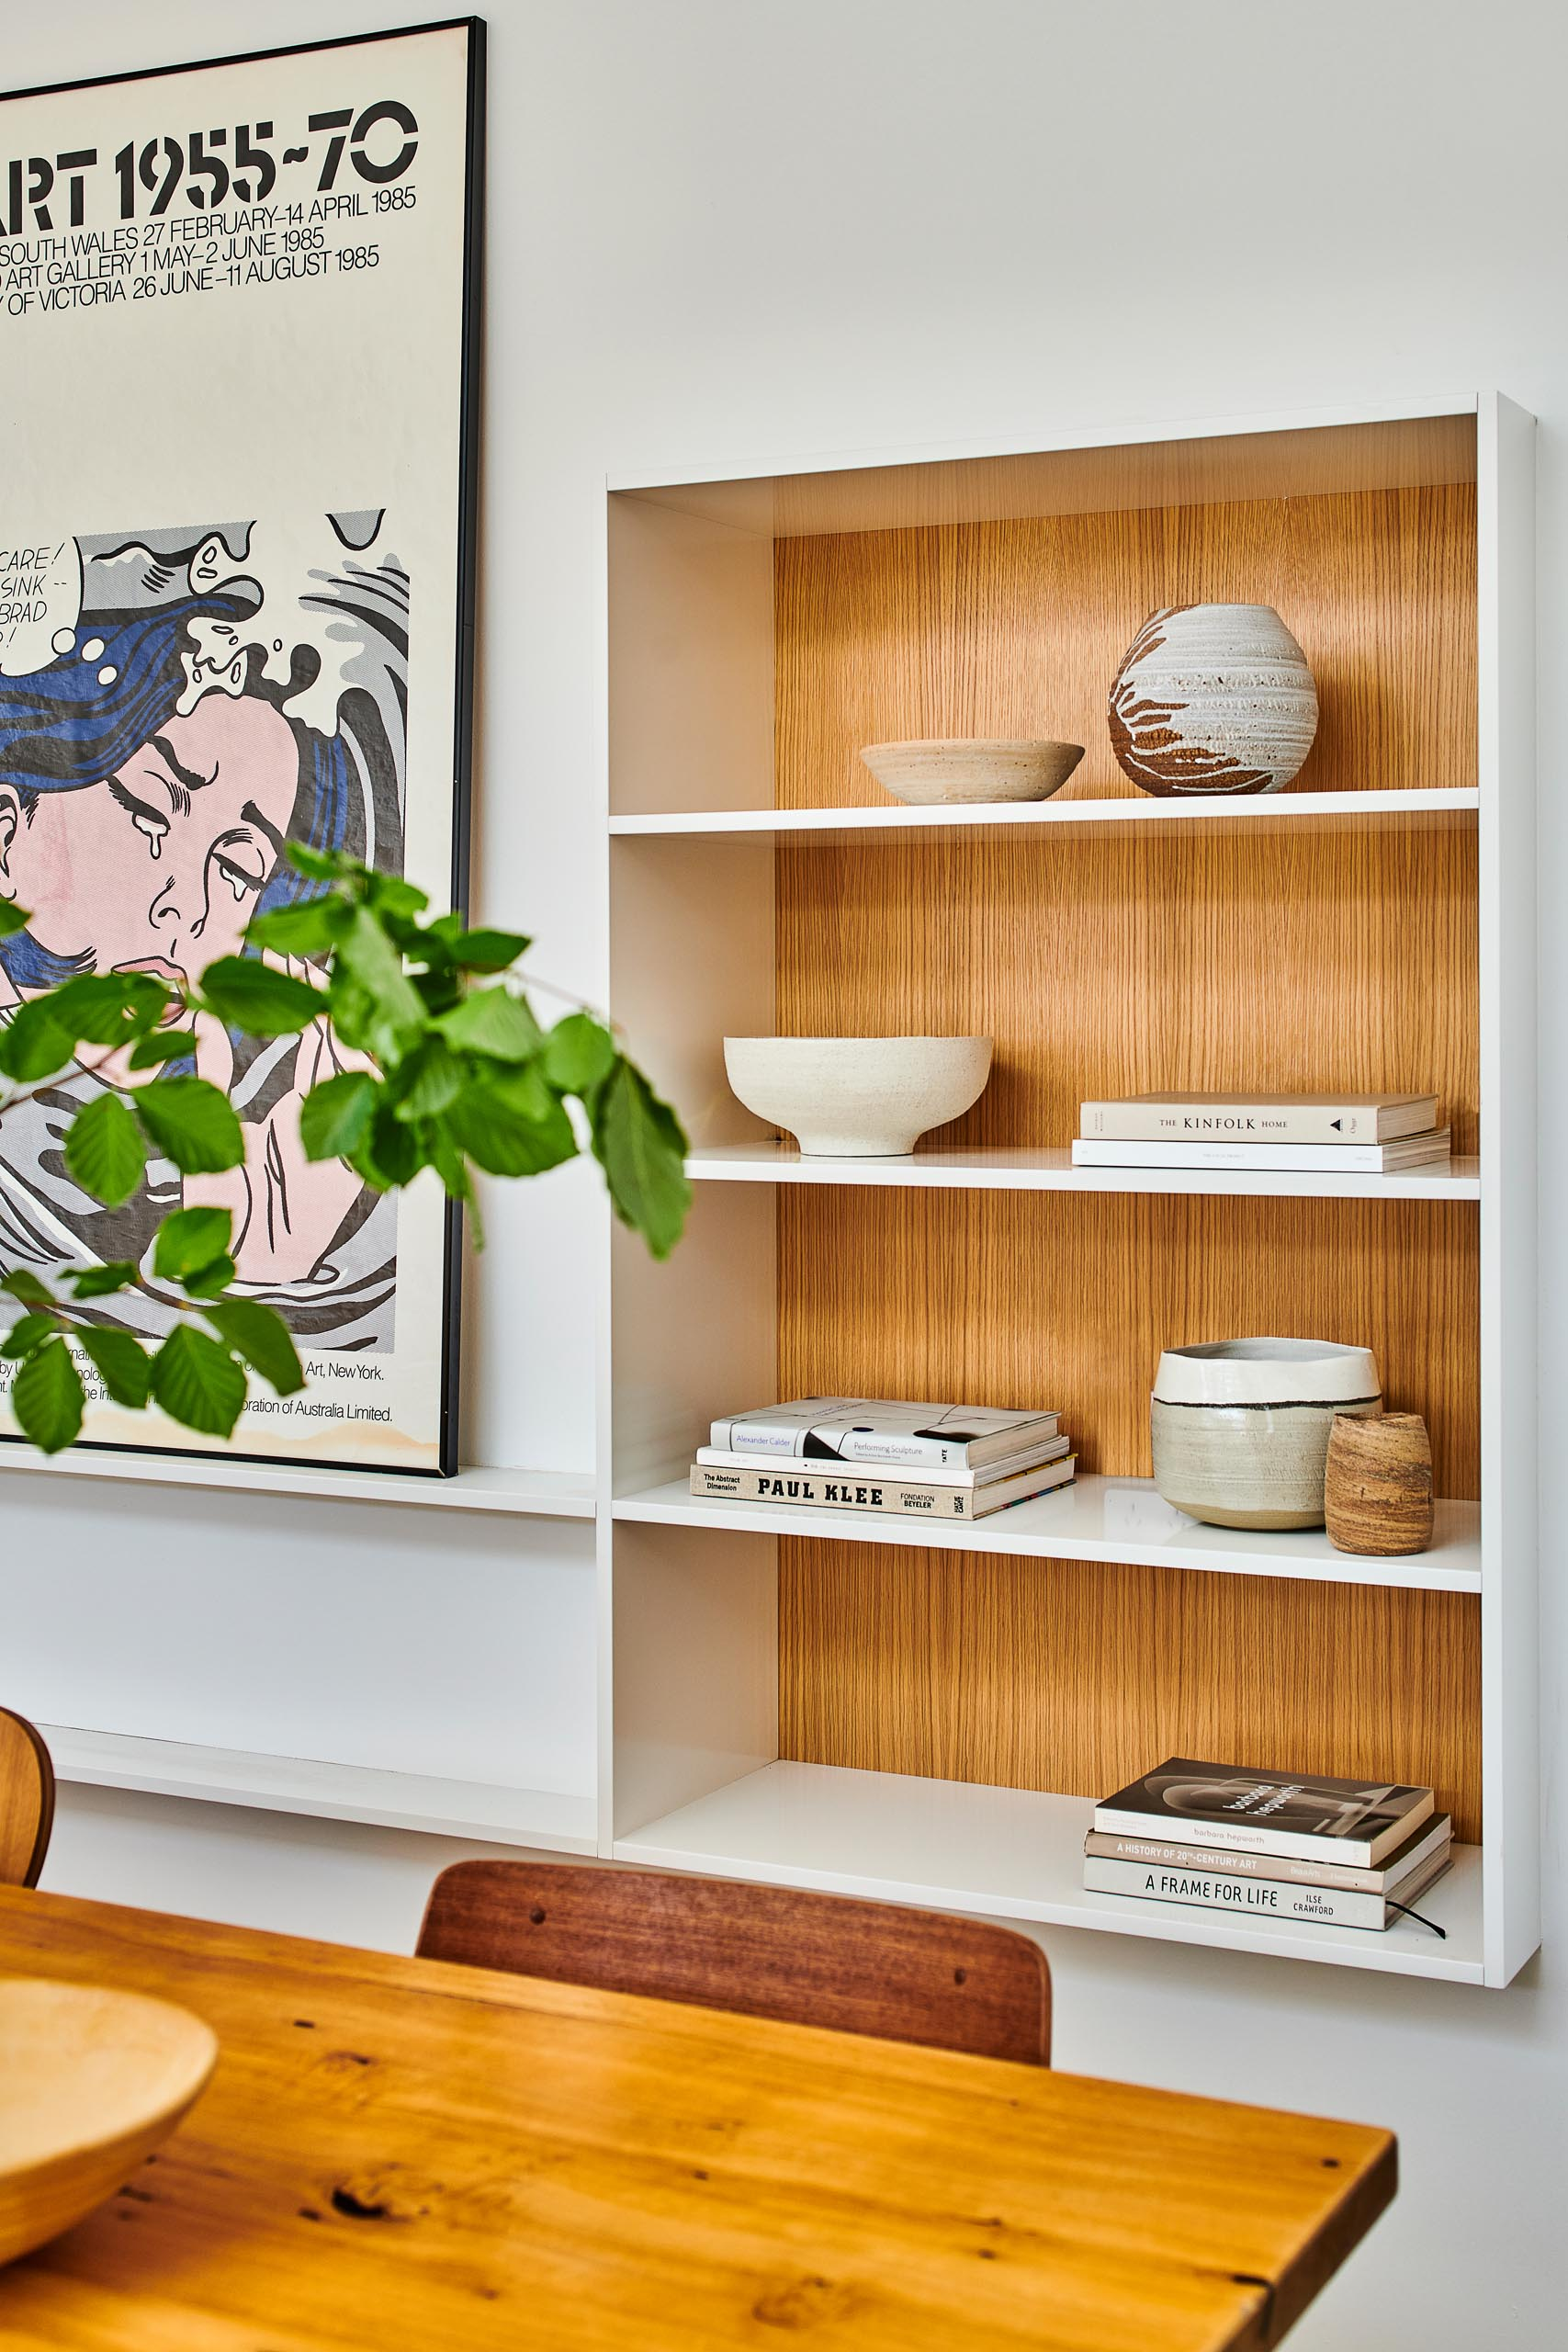 In this modern dining area, there's a bookshelf that's partially set back into the wall. The wood backing allows the decorative items to stand out.